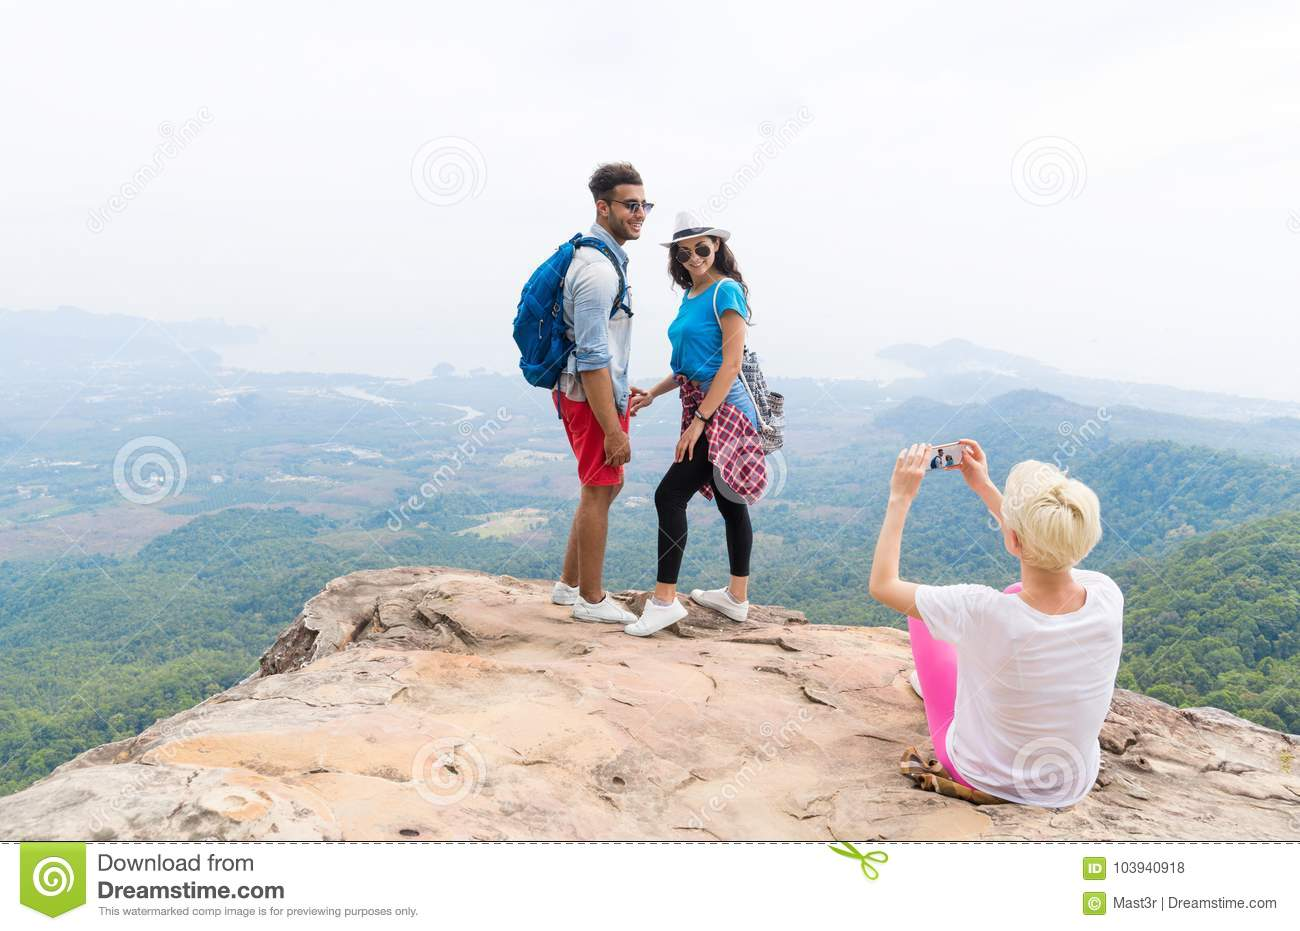 Girl Taking Photo Of Couple With Backpacks Posing Over Mountain Landscape On Cell Smart Phone, Trekking Young Man And